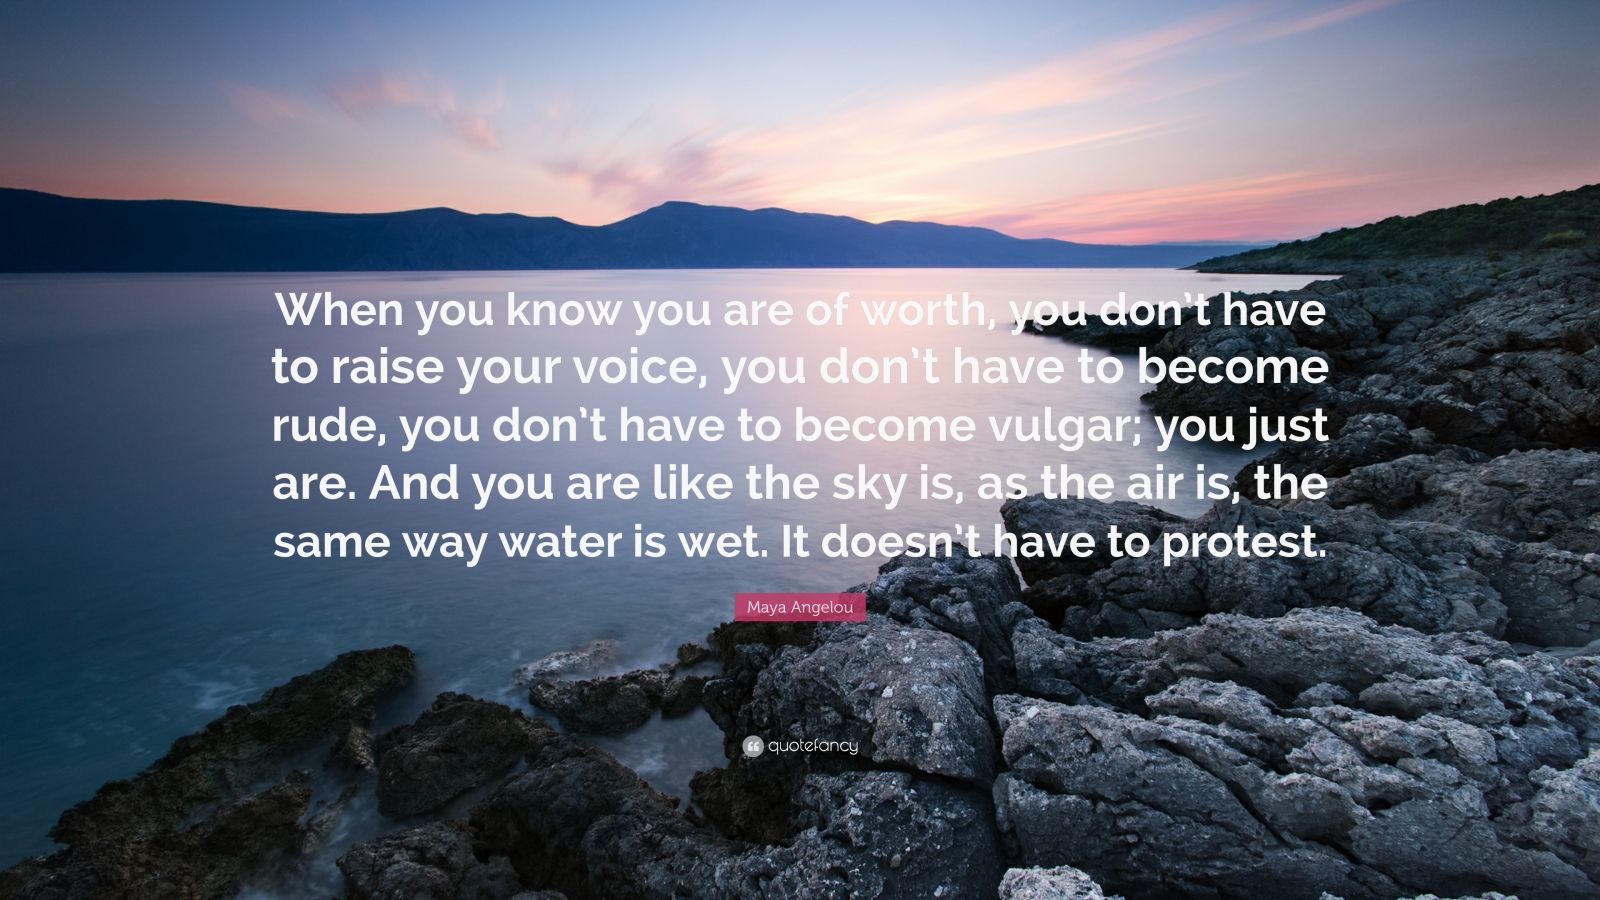 "Maya Angelou Quote: ""When you know you are of worth, you don't have to raise your voice, you don't have to become rude, you don't have to become vulgar; you just are. And you are like the sky is, as the air is, the same way water is wet. It doesn't have to protest."""